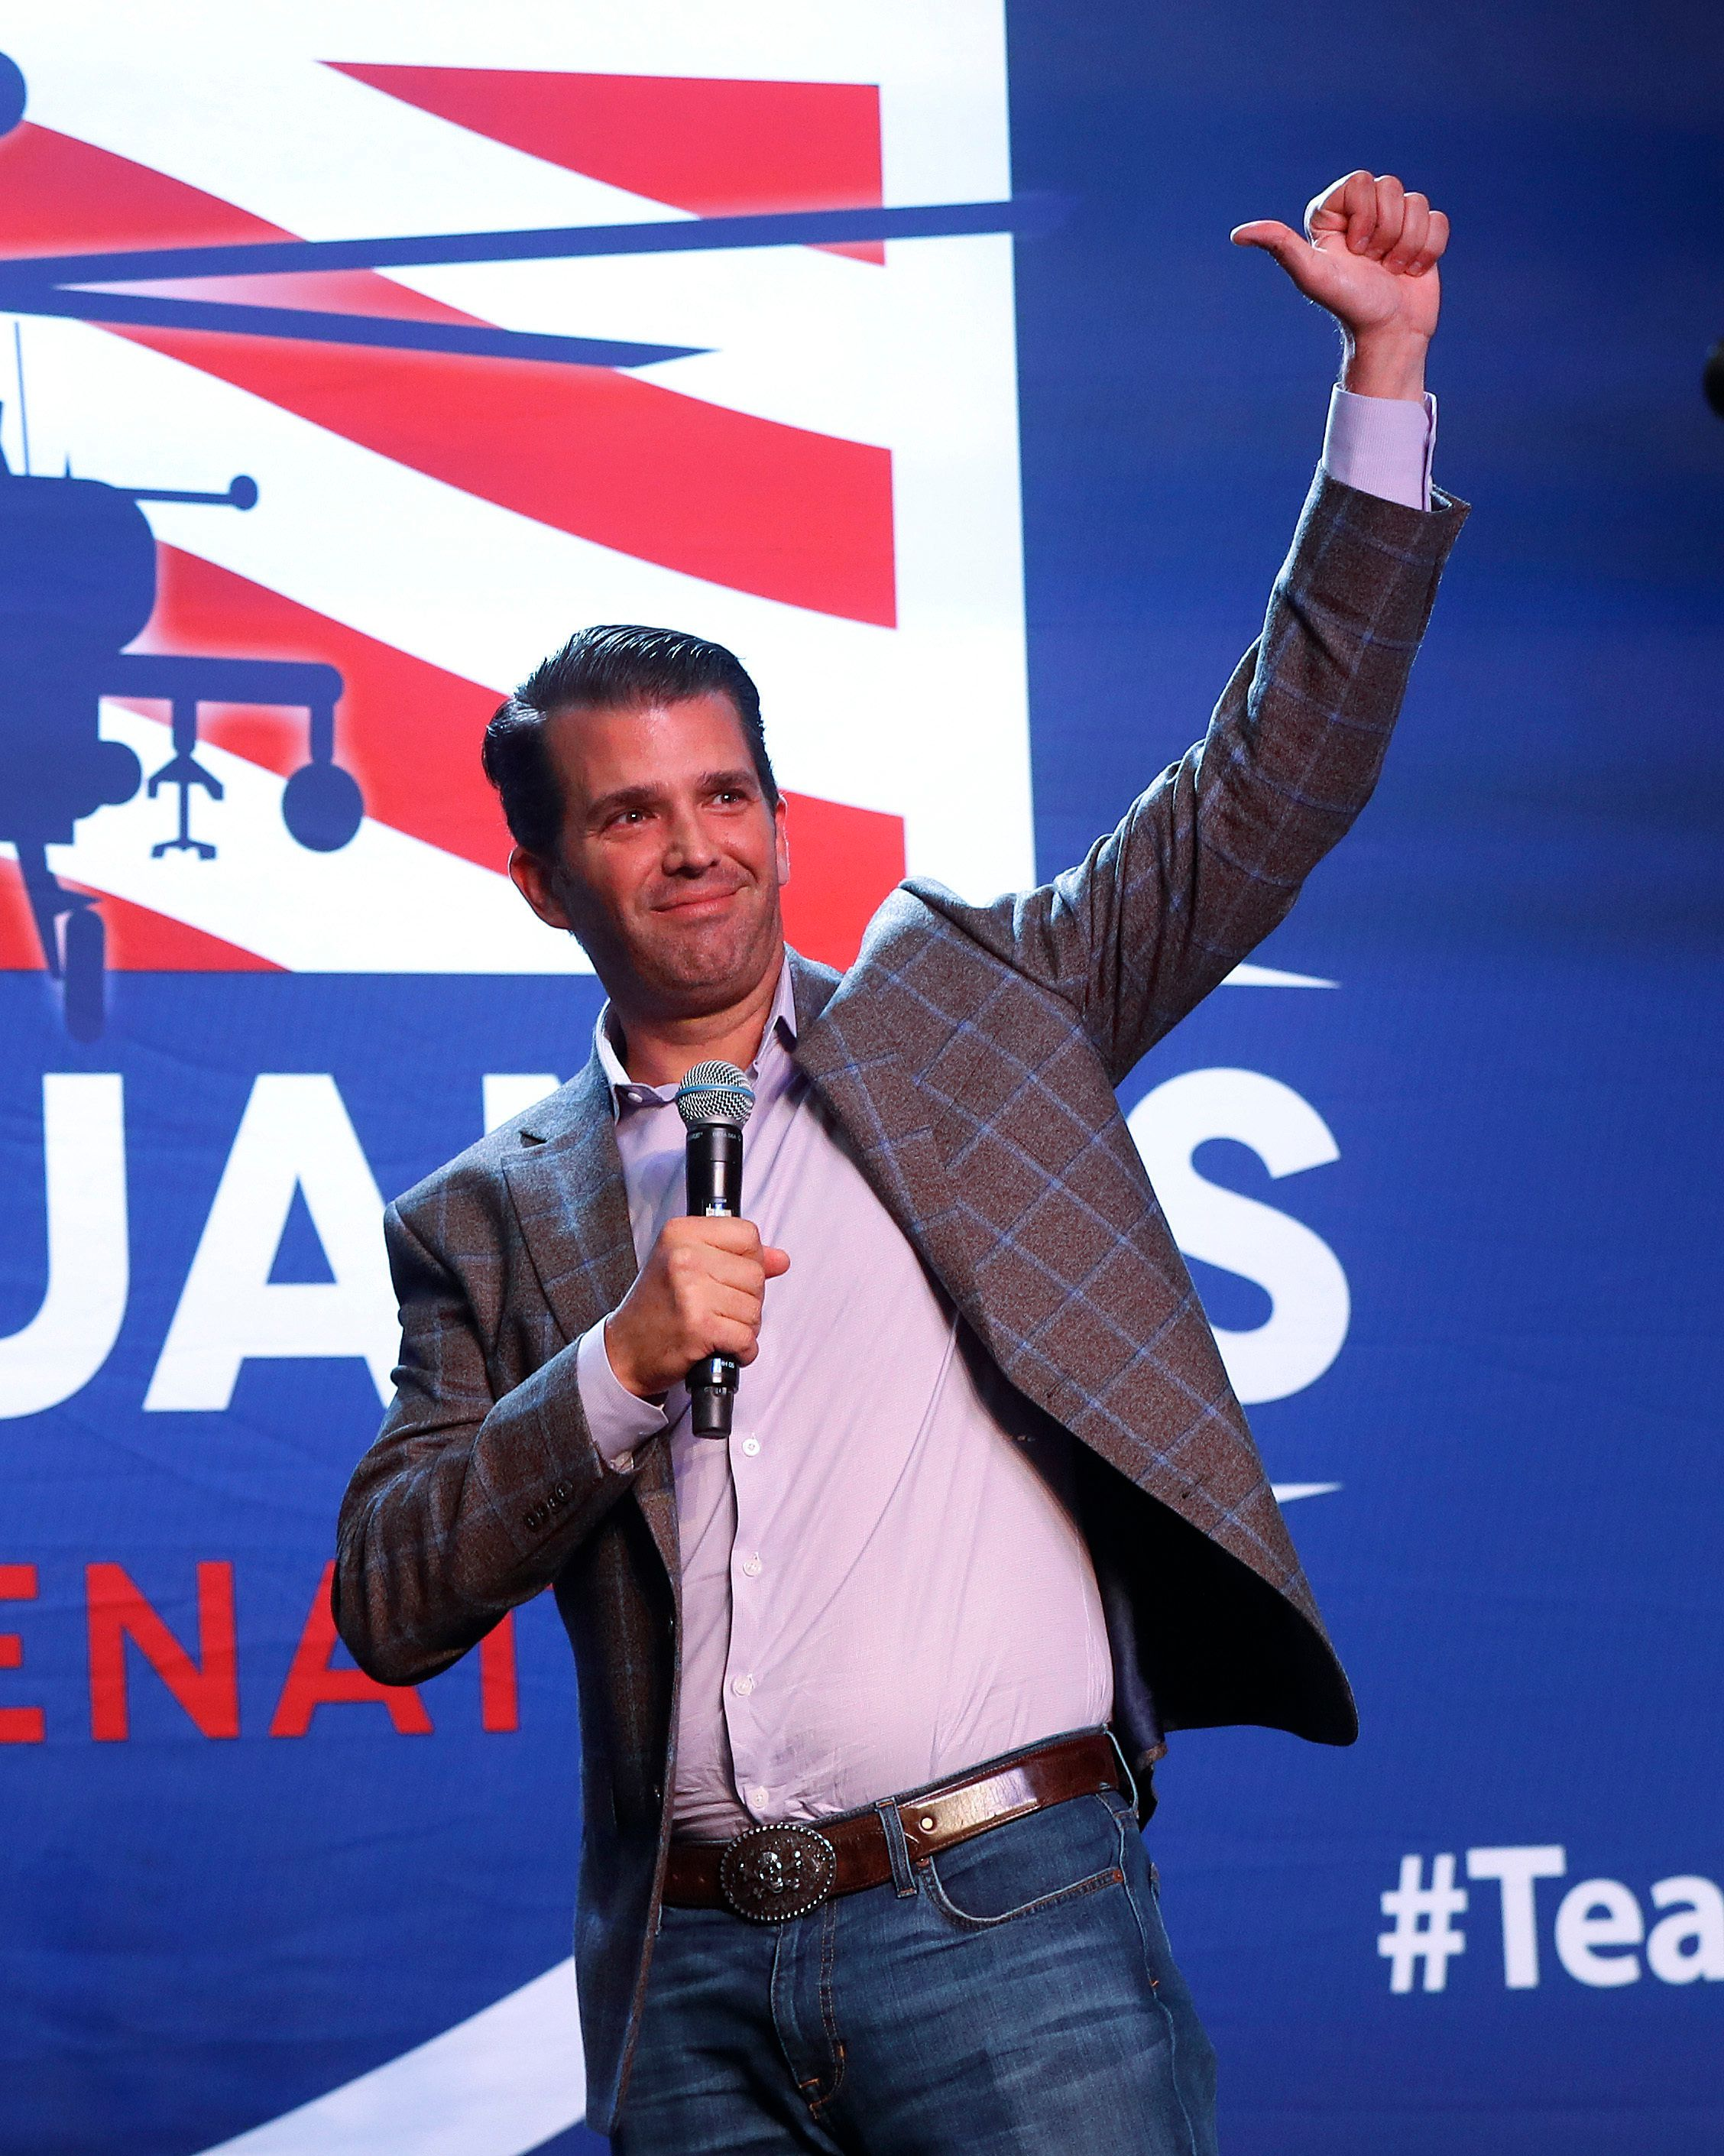 Donald Trump Jr., appears during a rally for Republican U.S. Senate candidate John James in Pontiac, Mich., Wednesday, Oct. 17, 2018. (AP Photo/Paul Sancya)